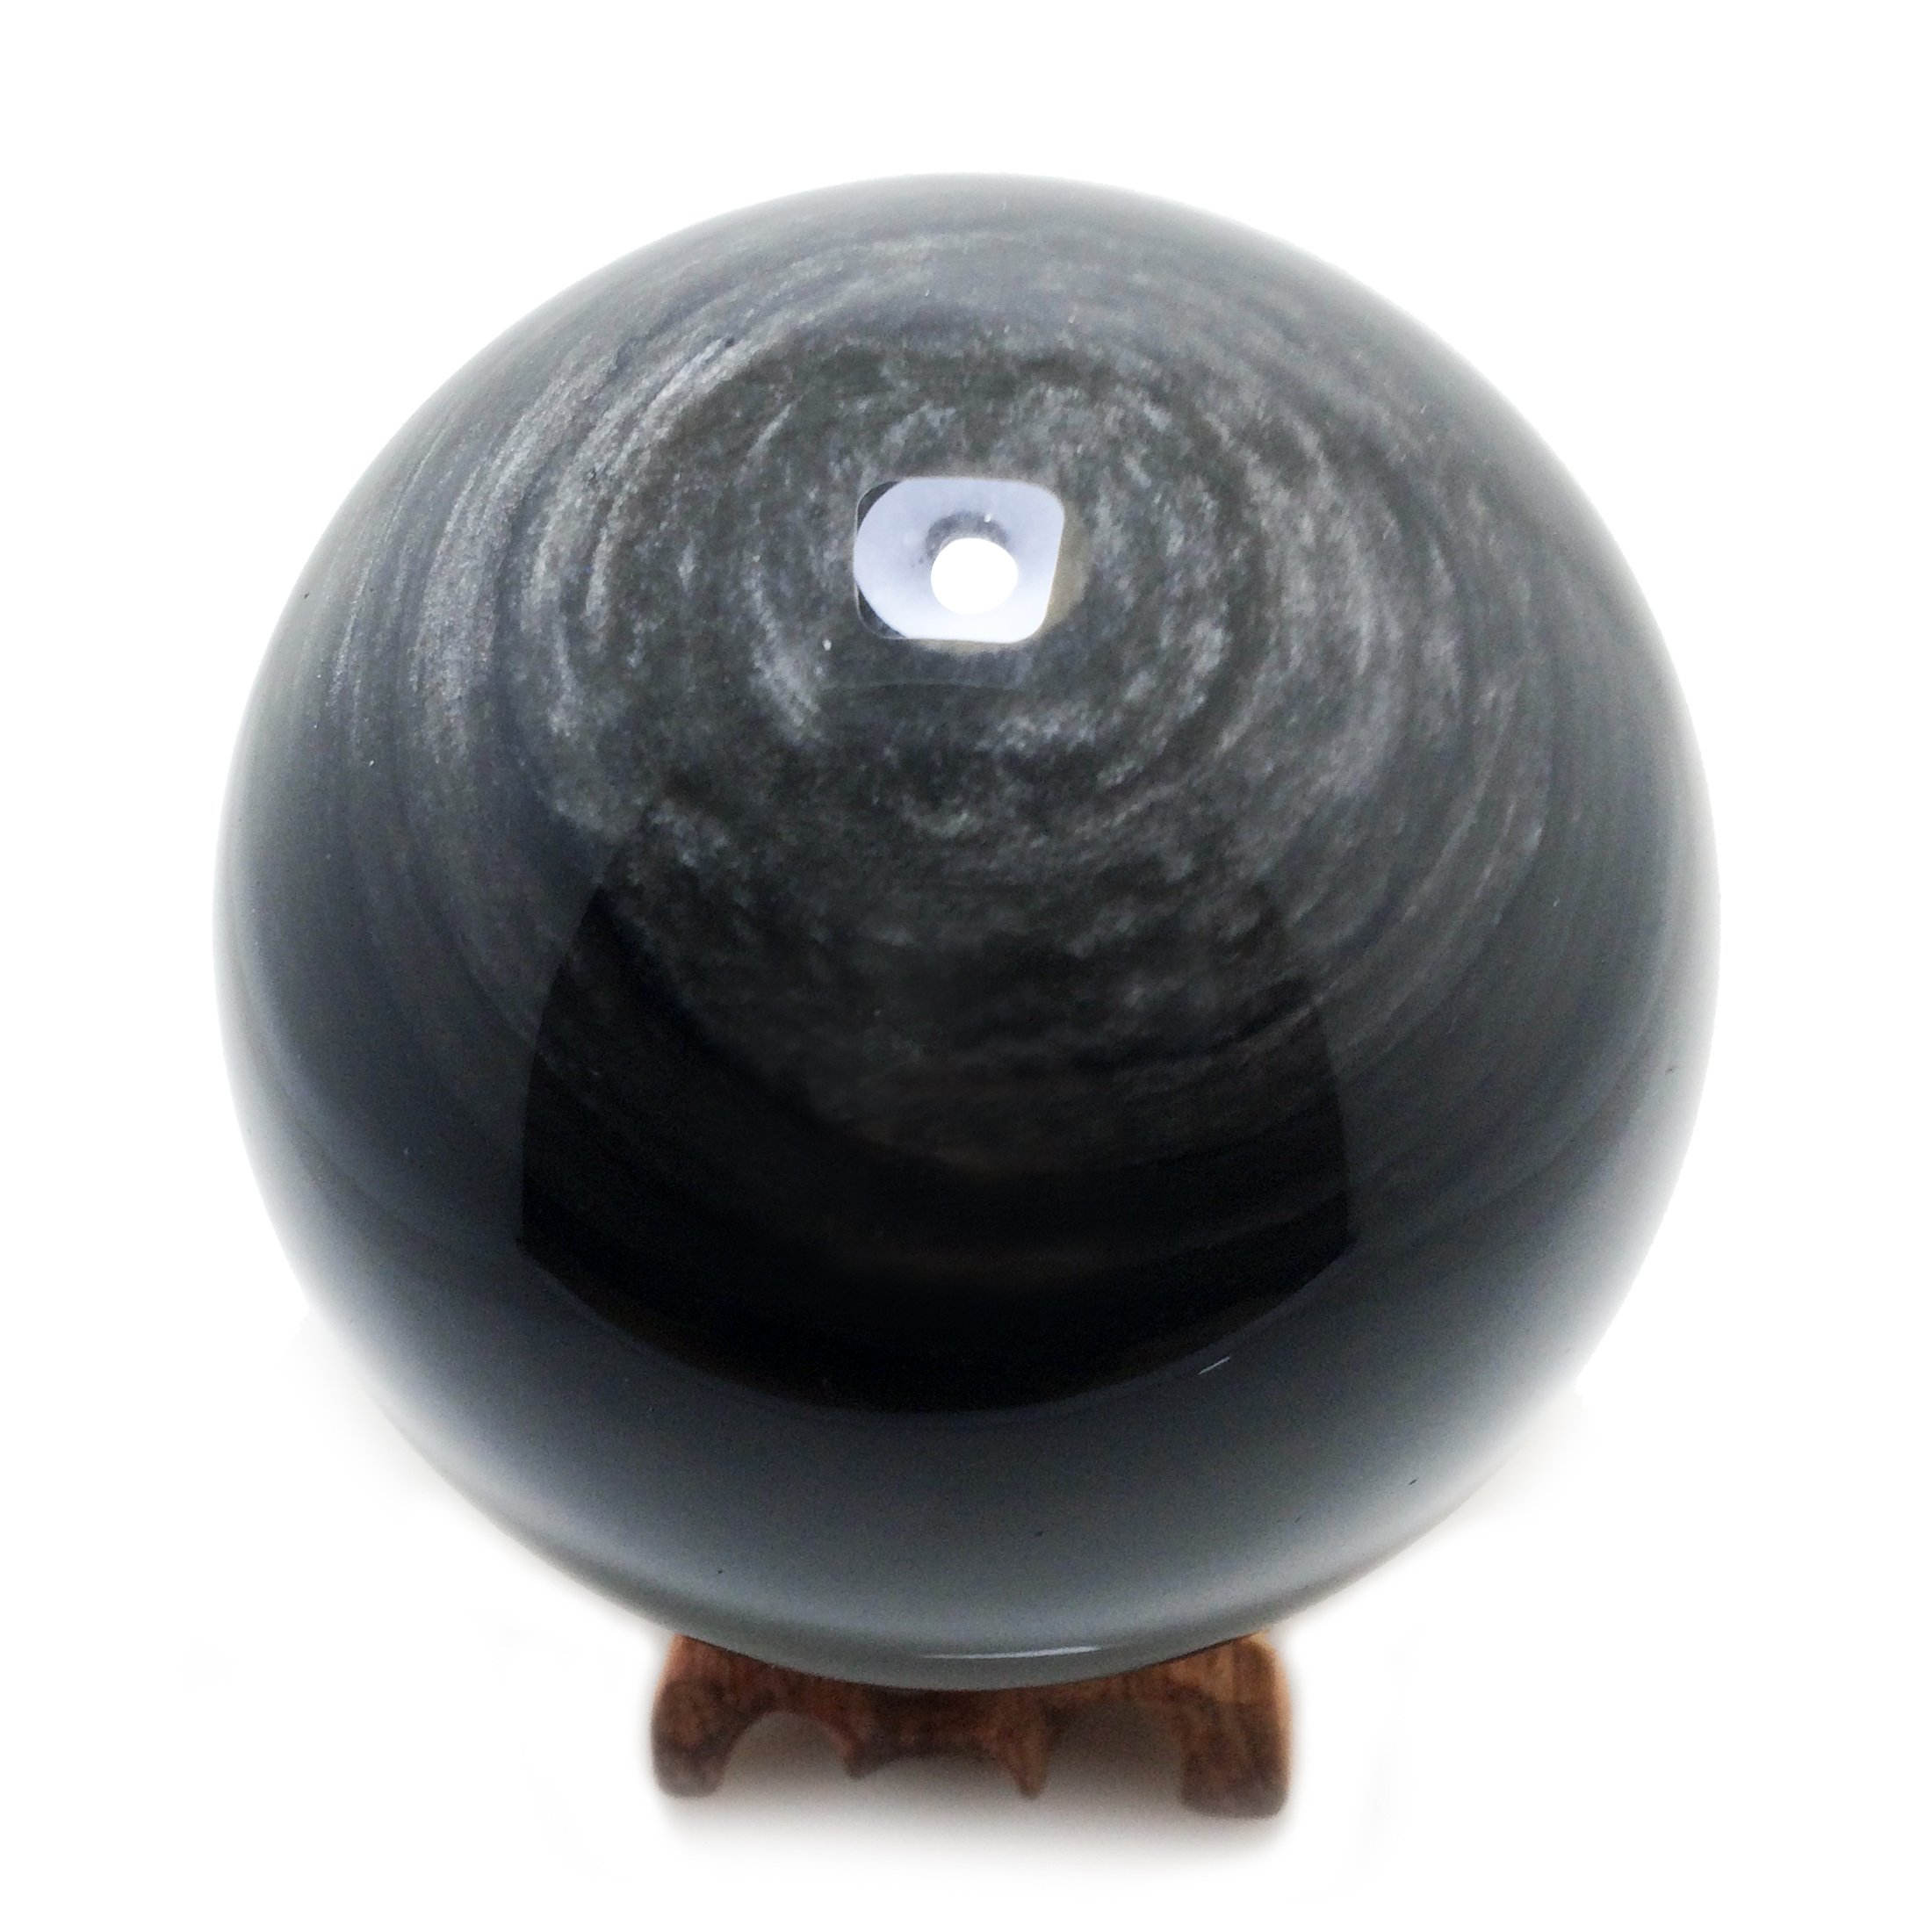 """Silver Obsidian Crystal Spheres, 60mm / 2.4"""" Diameter, Rare Protective Stone Balls Decoration, Healing, Meditation, Feng Shui, Hand-Made"""